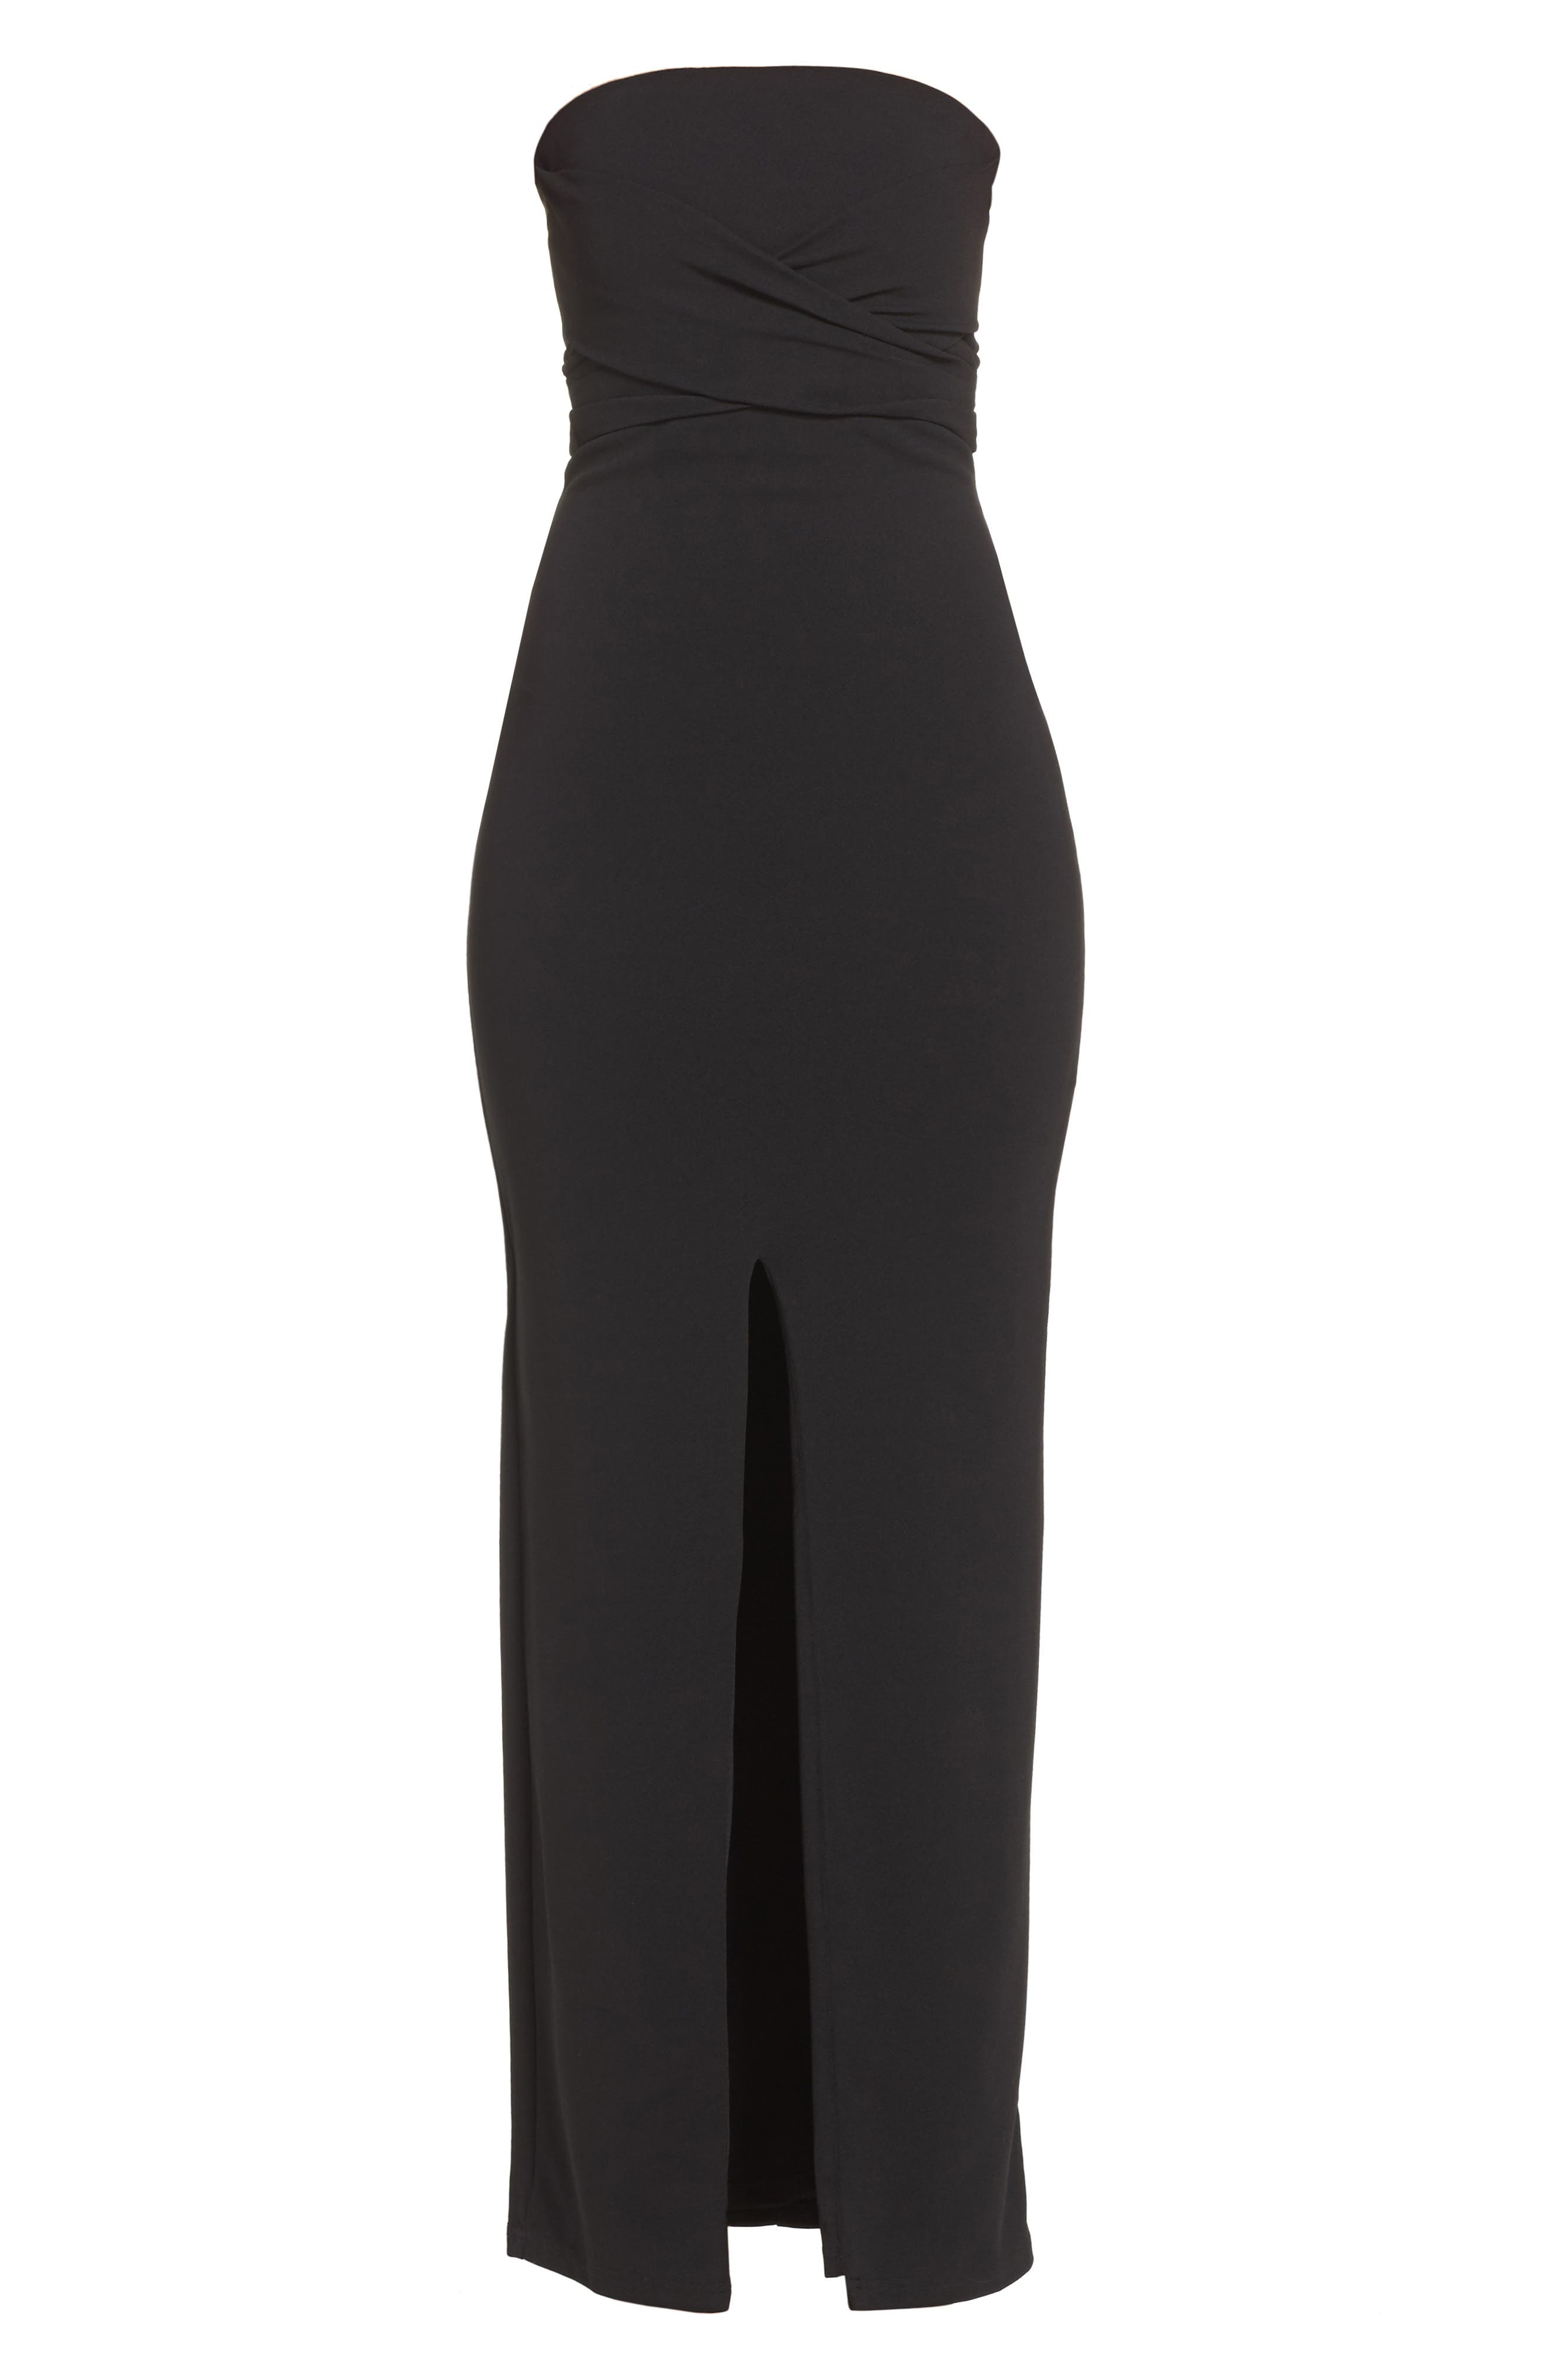 Own the Night Strapless Maxi Dress,                             Alternate thumbnail 7, color,                             001